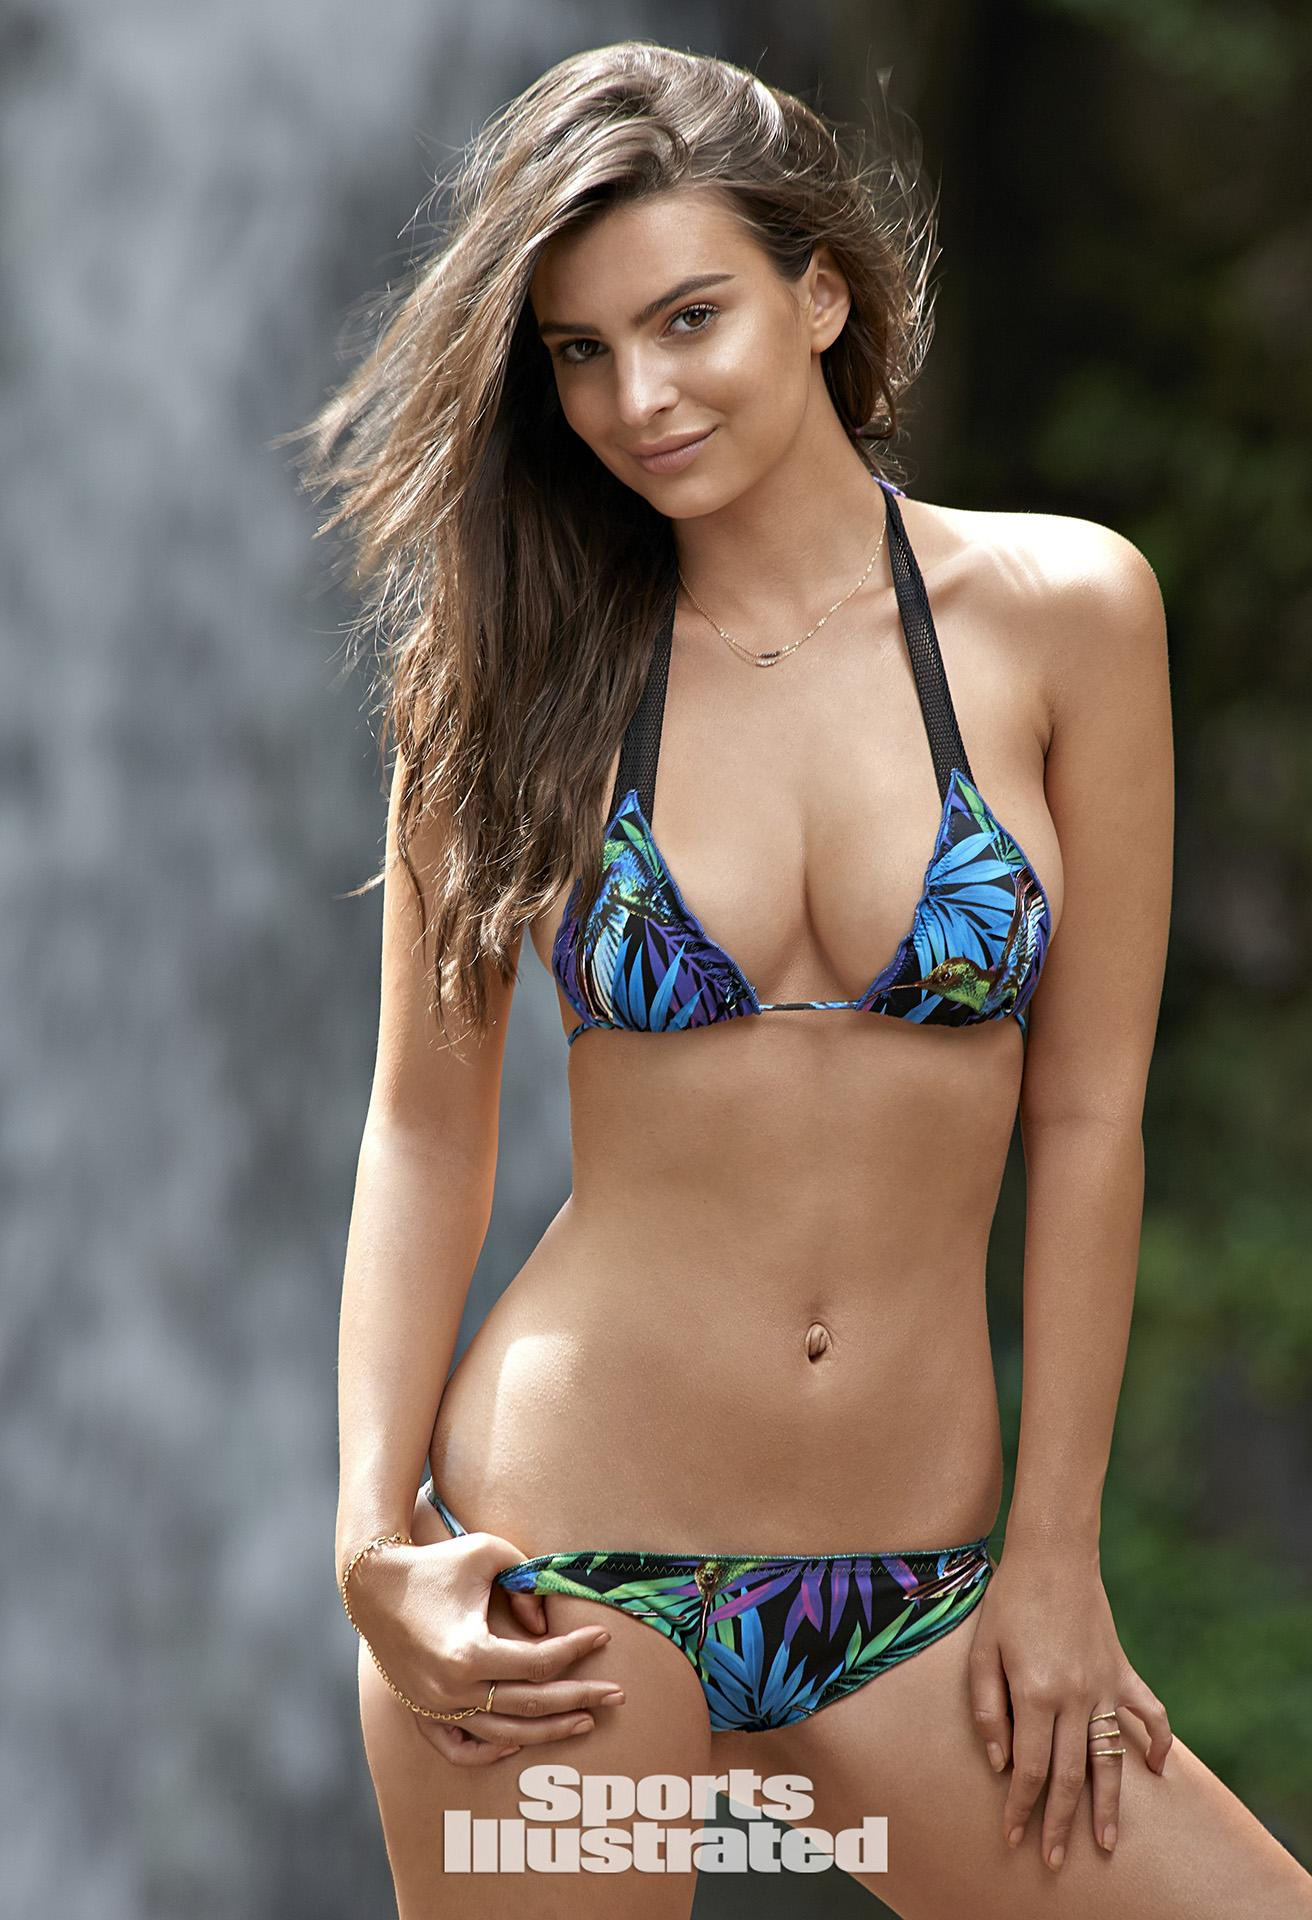 Emily Ratajkowski Swimsuit Photos, Sports Illustrated Swimsuit 2015